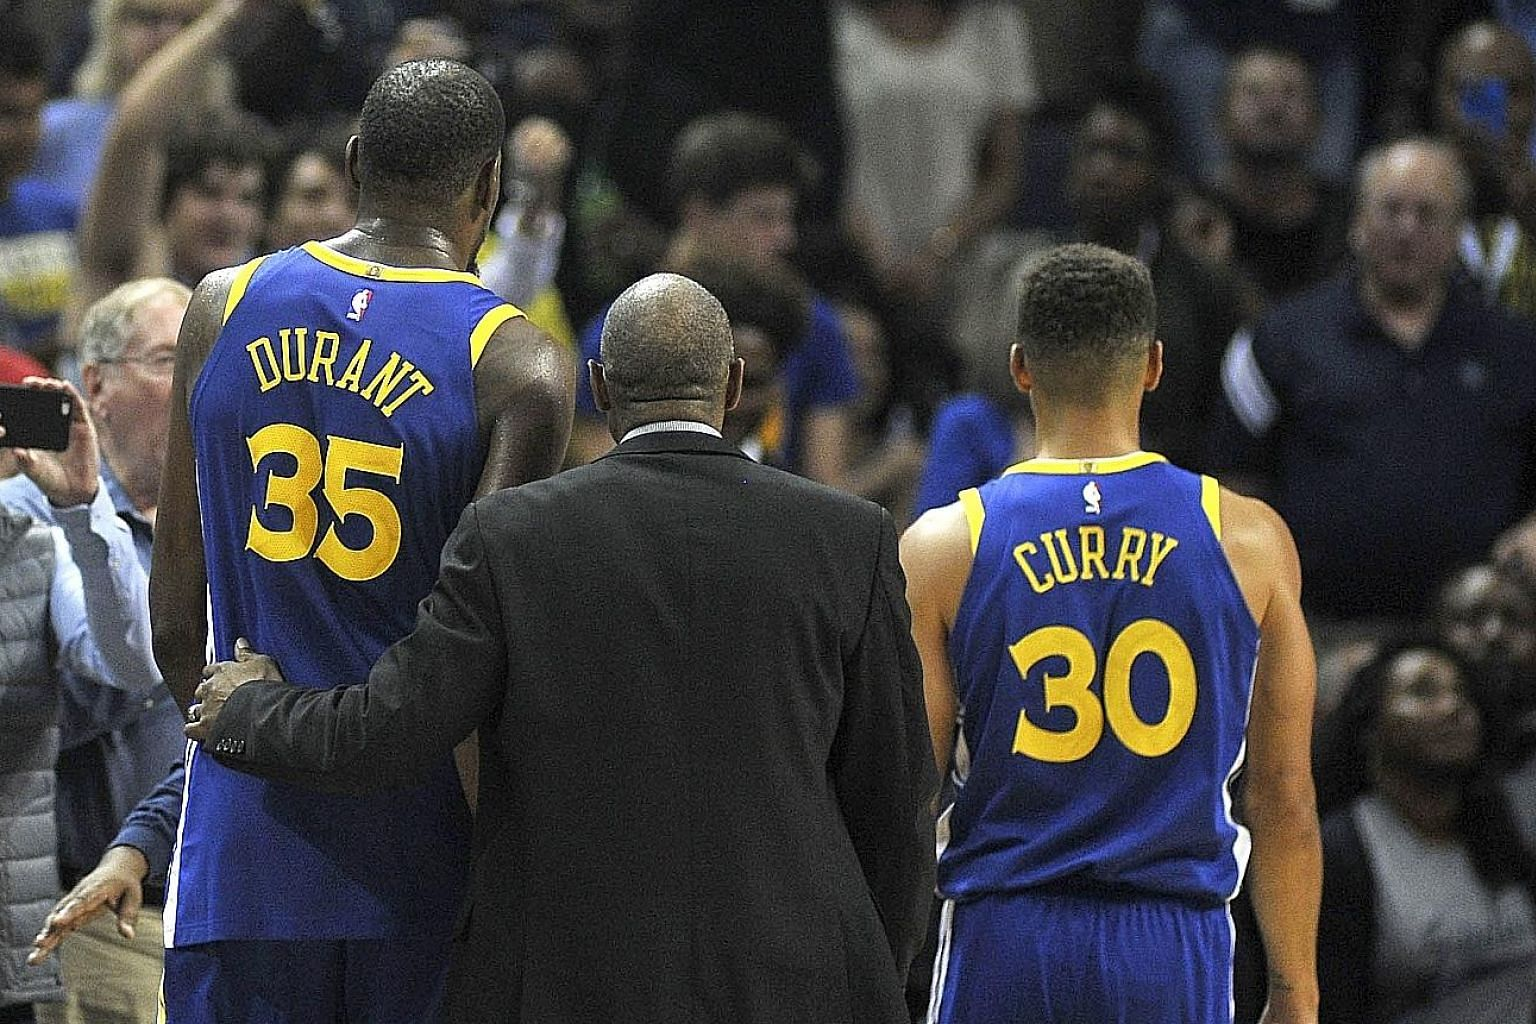 Golden State Warriors forward Kevin Durant and guard Stephen Curry are ejected during the second half of their game against the Memphis Grizzlies. Memphis defeated Golden State 111-101 at the FedExForum.